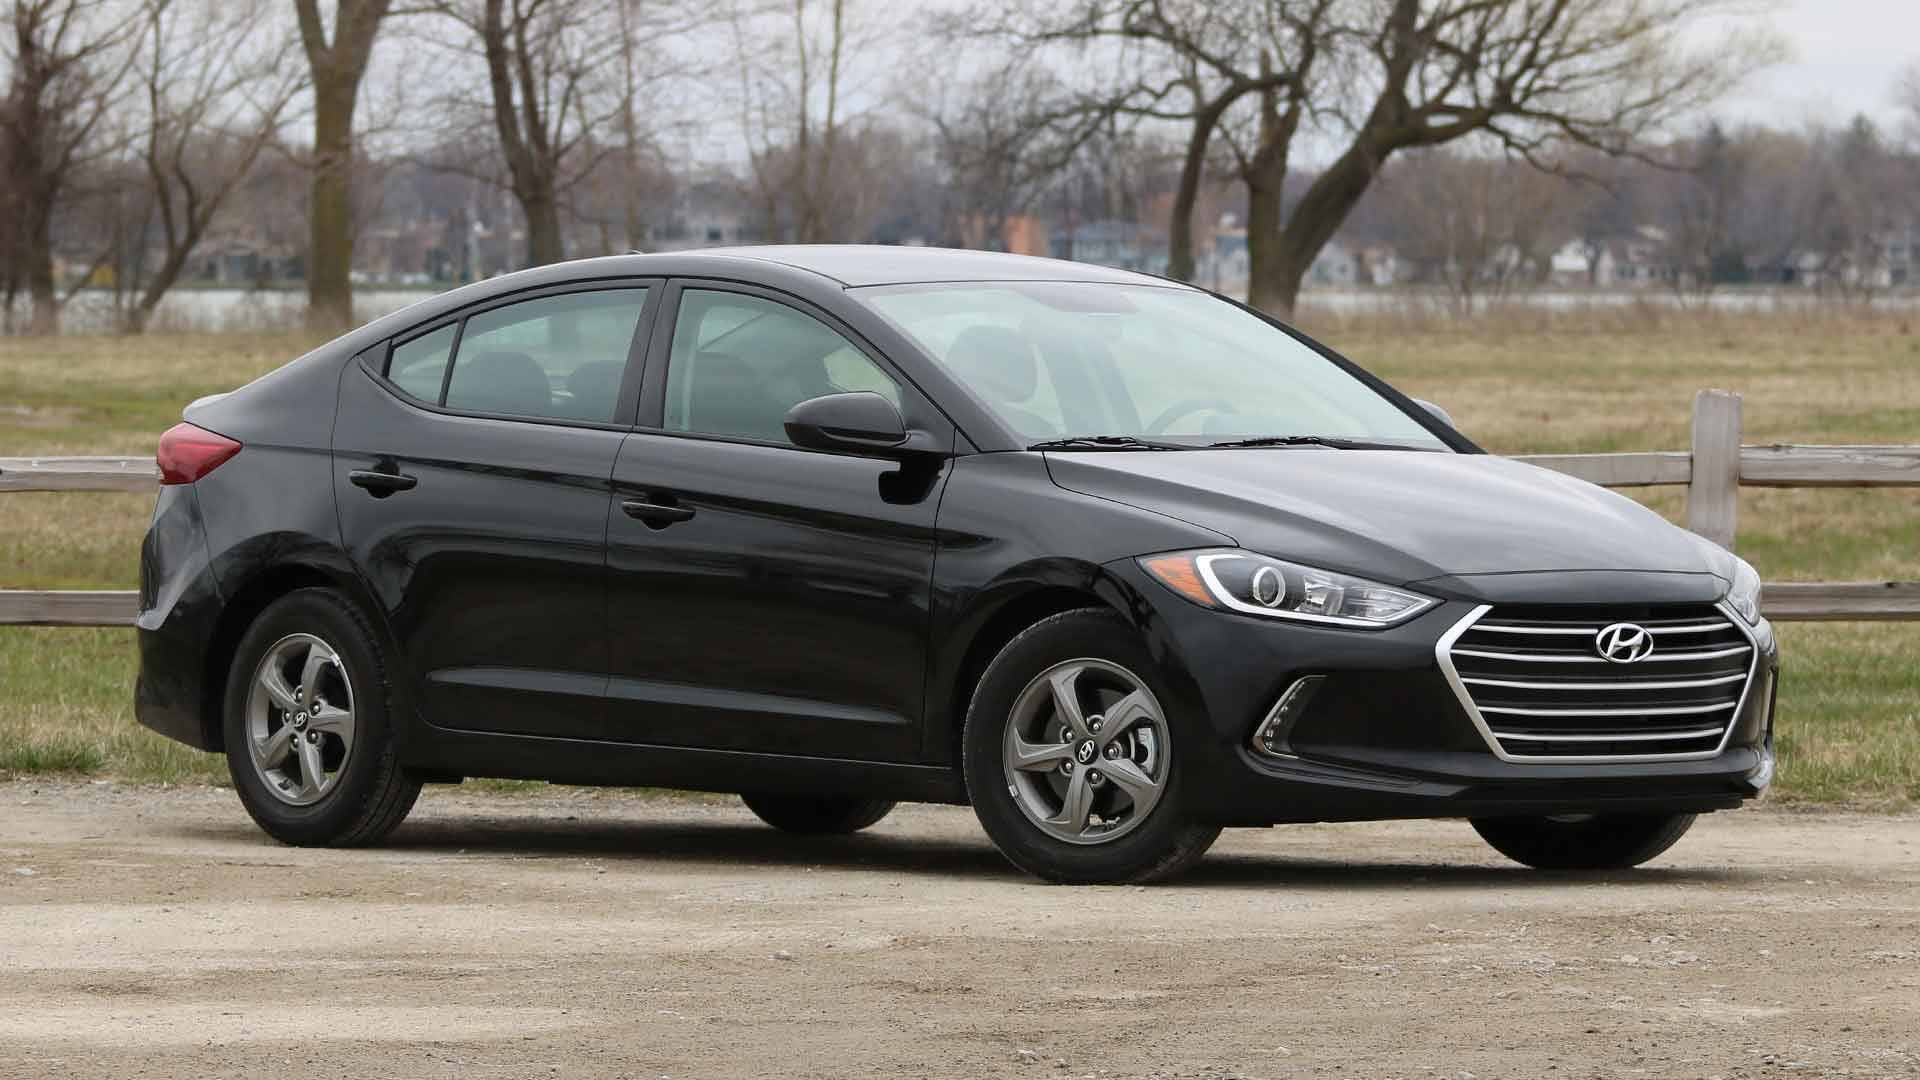 2018 hyundai elantra eco review high on economy light on options